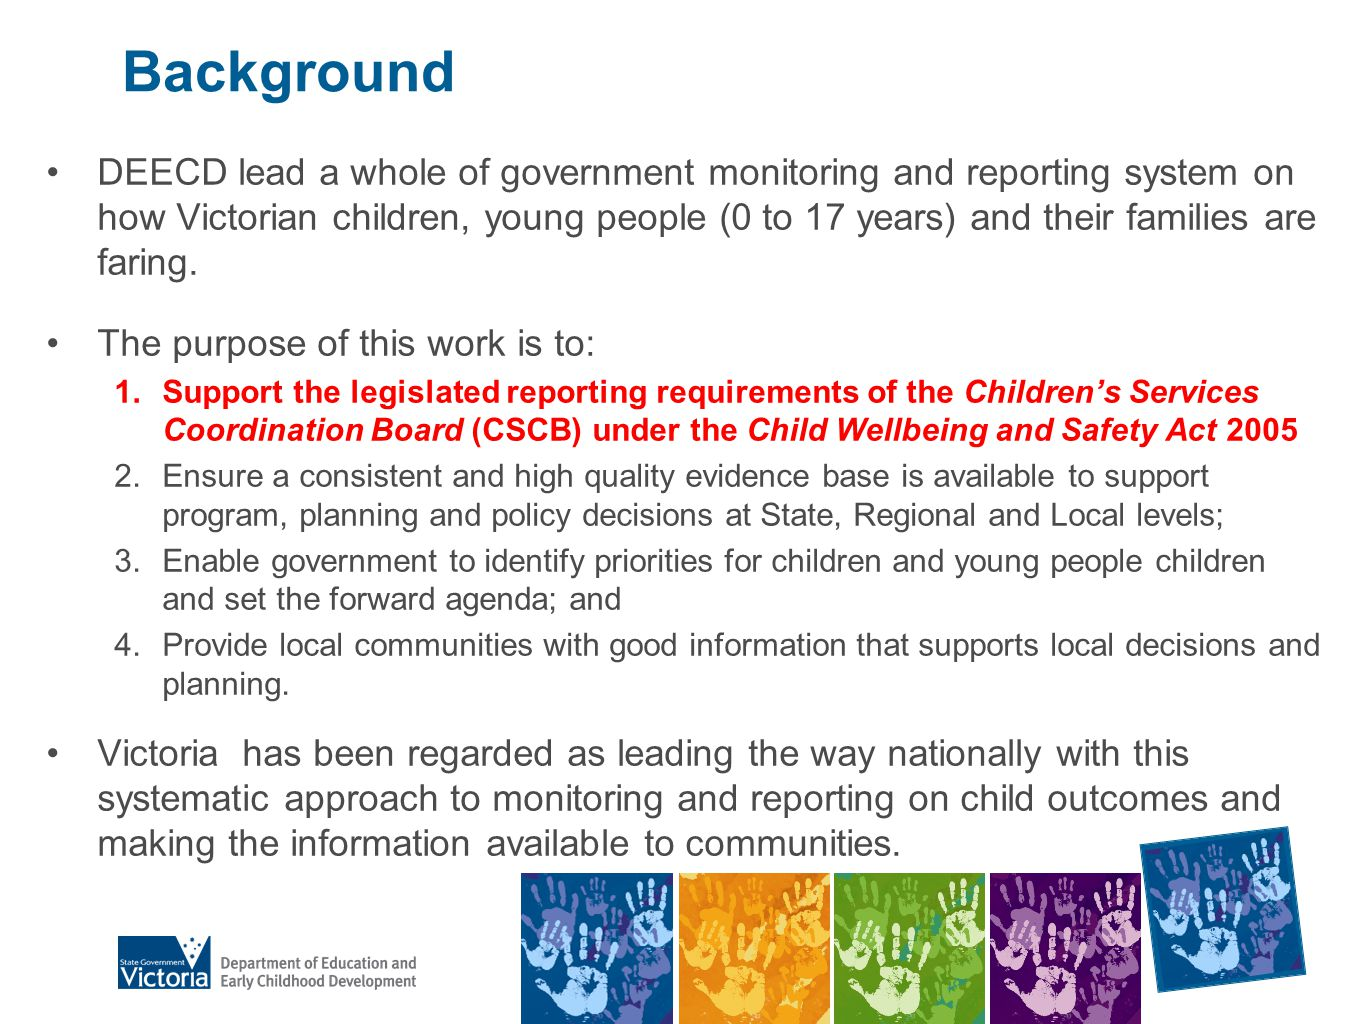 The Victorian Child and Adolescent Outcomes Framework CSCB established a framework to support monitoring and reporting.